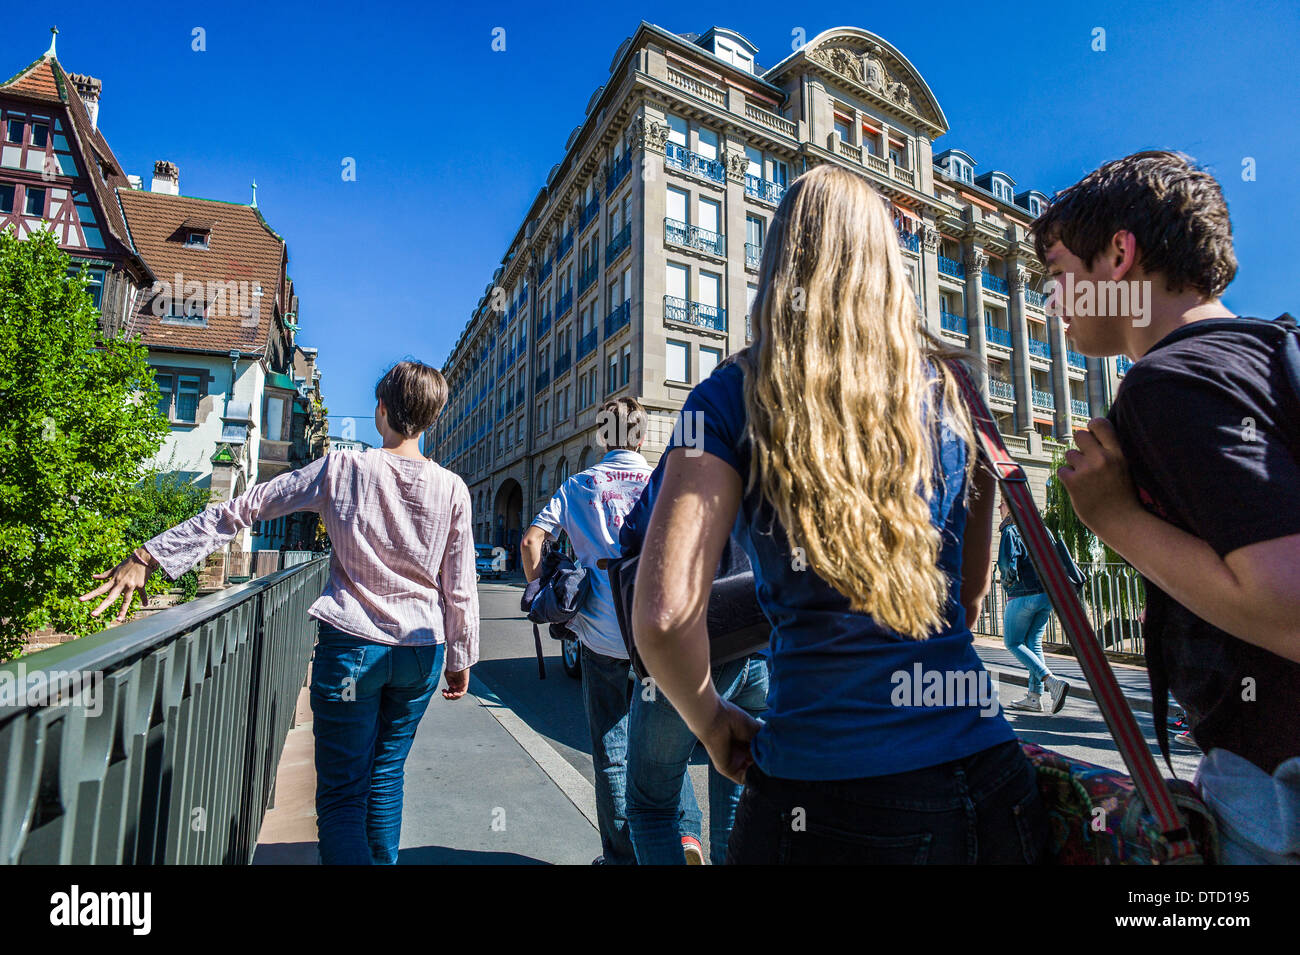 teen students walking to high school Strasbourg Alsace France Europe - Stock Image